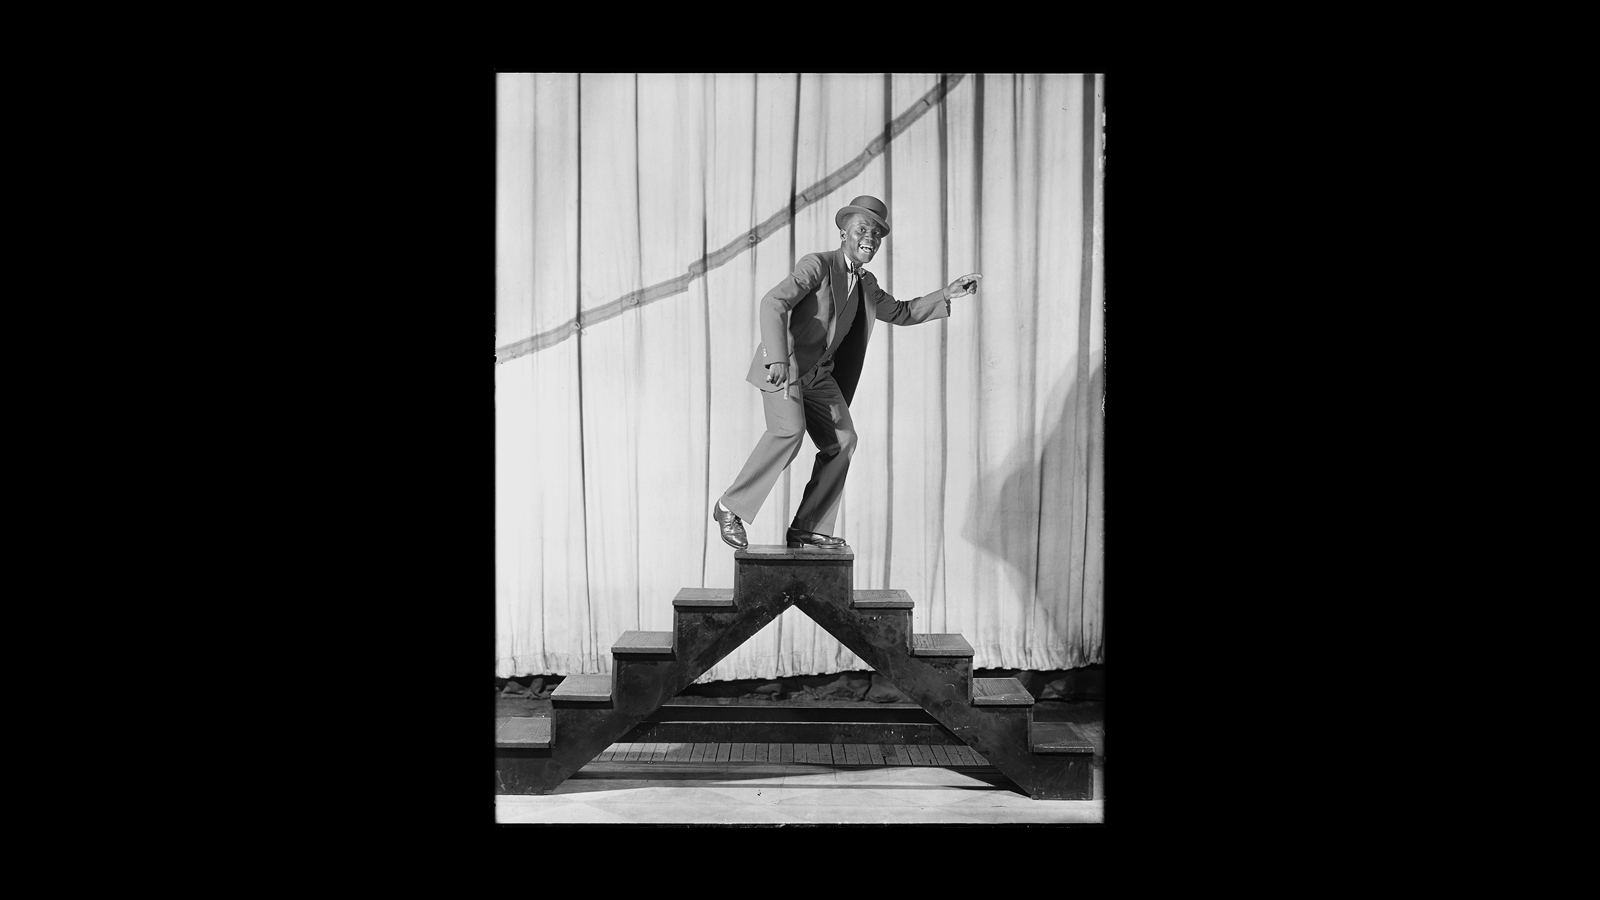 Bill Robinson (Bojangles), wearing a suit and hat, one arm outstretched, with smile, poses at top of a platform with five steps on each side.